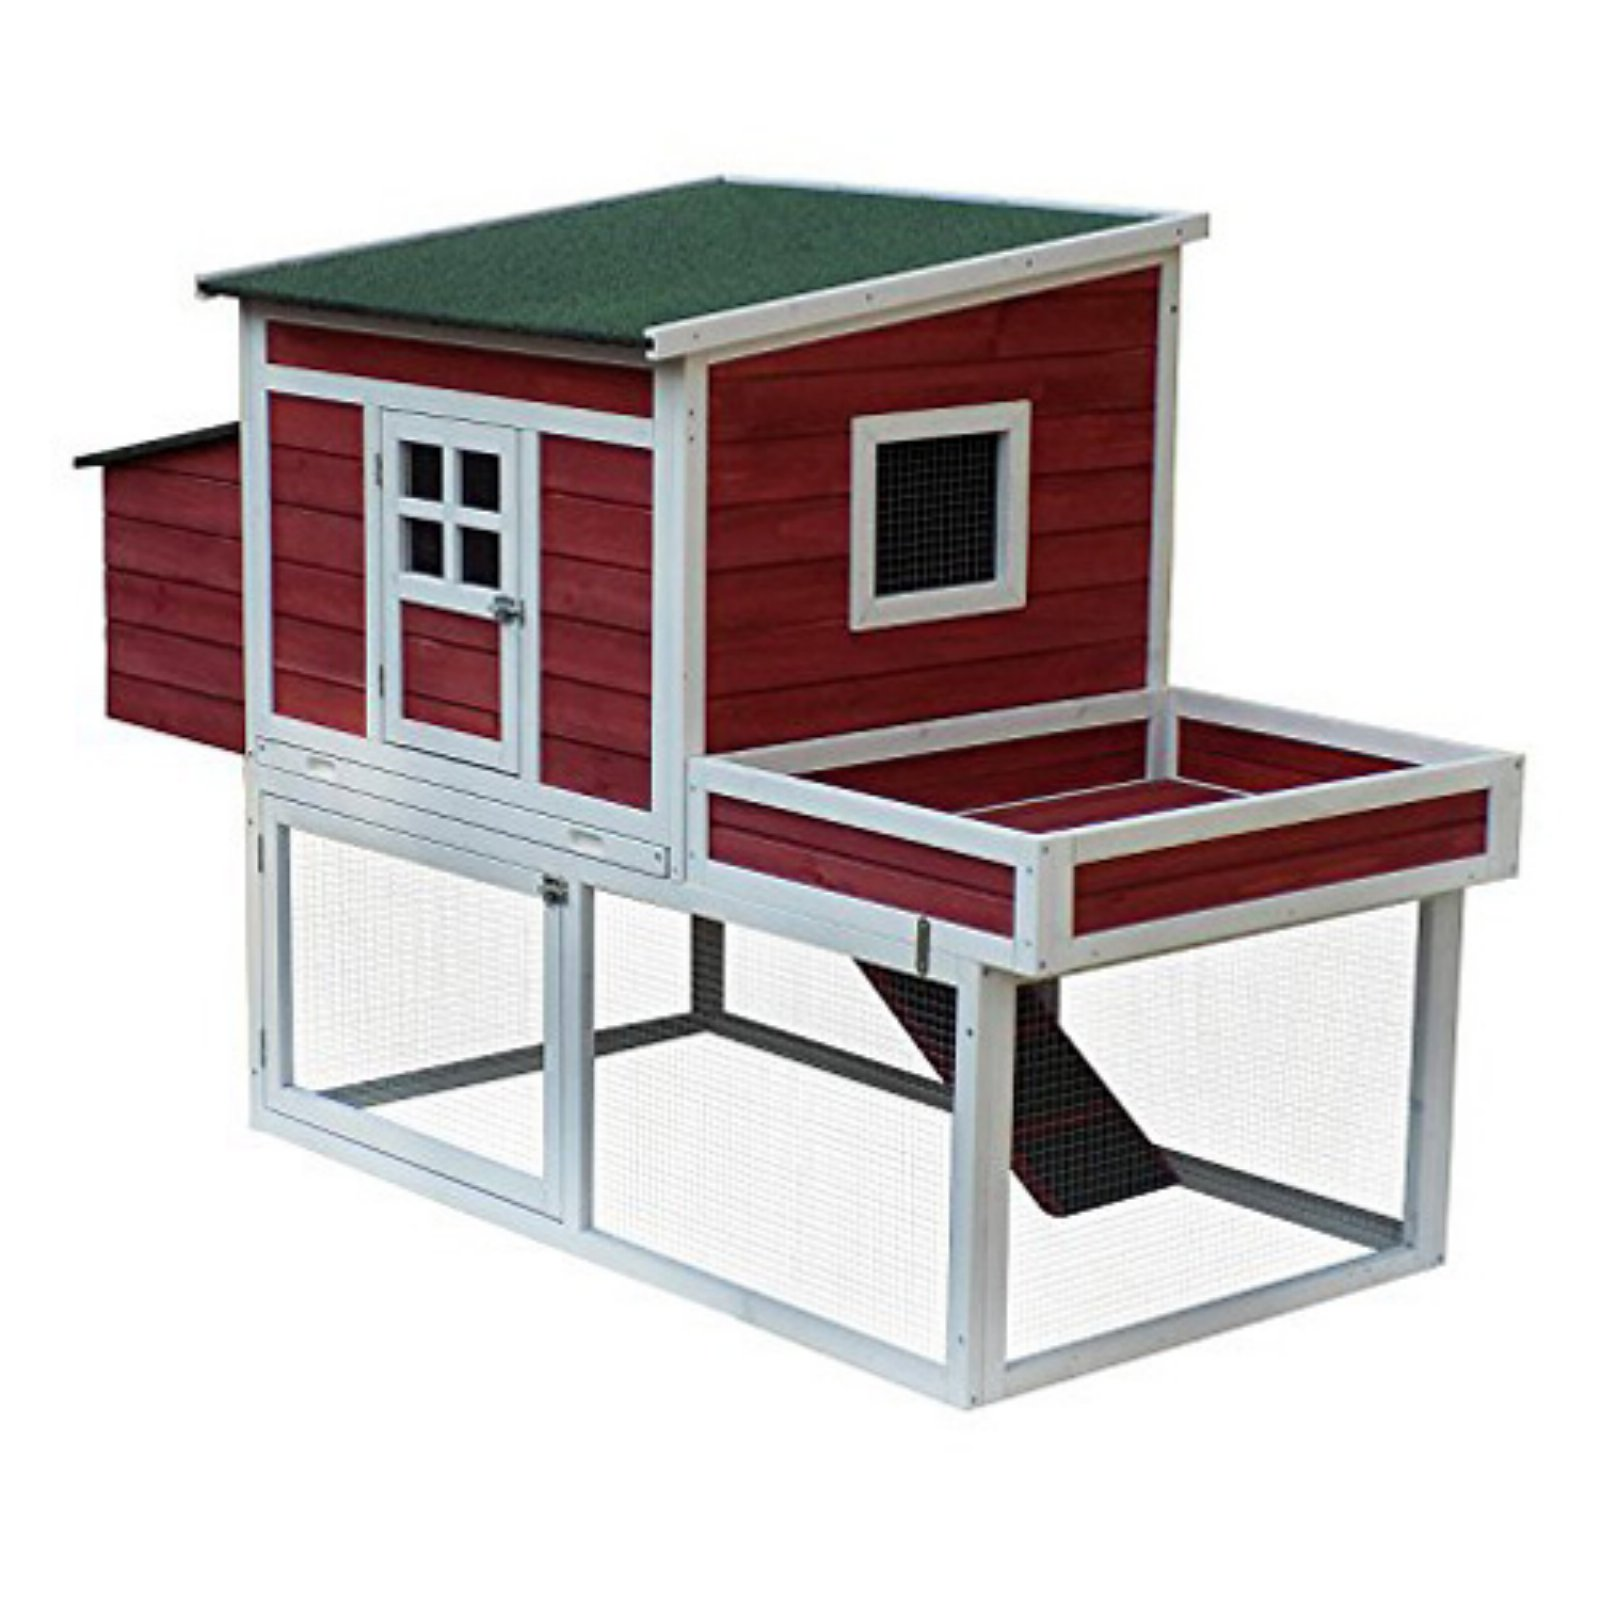 Pawhut Farmhouse Shed Chicken Coop with Nesting Box and Run